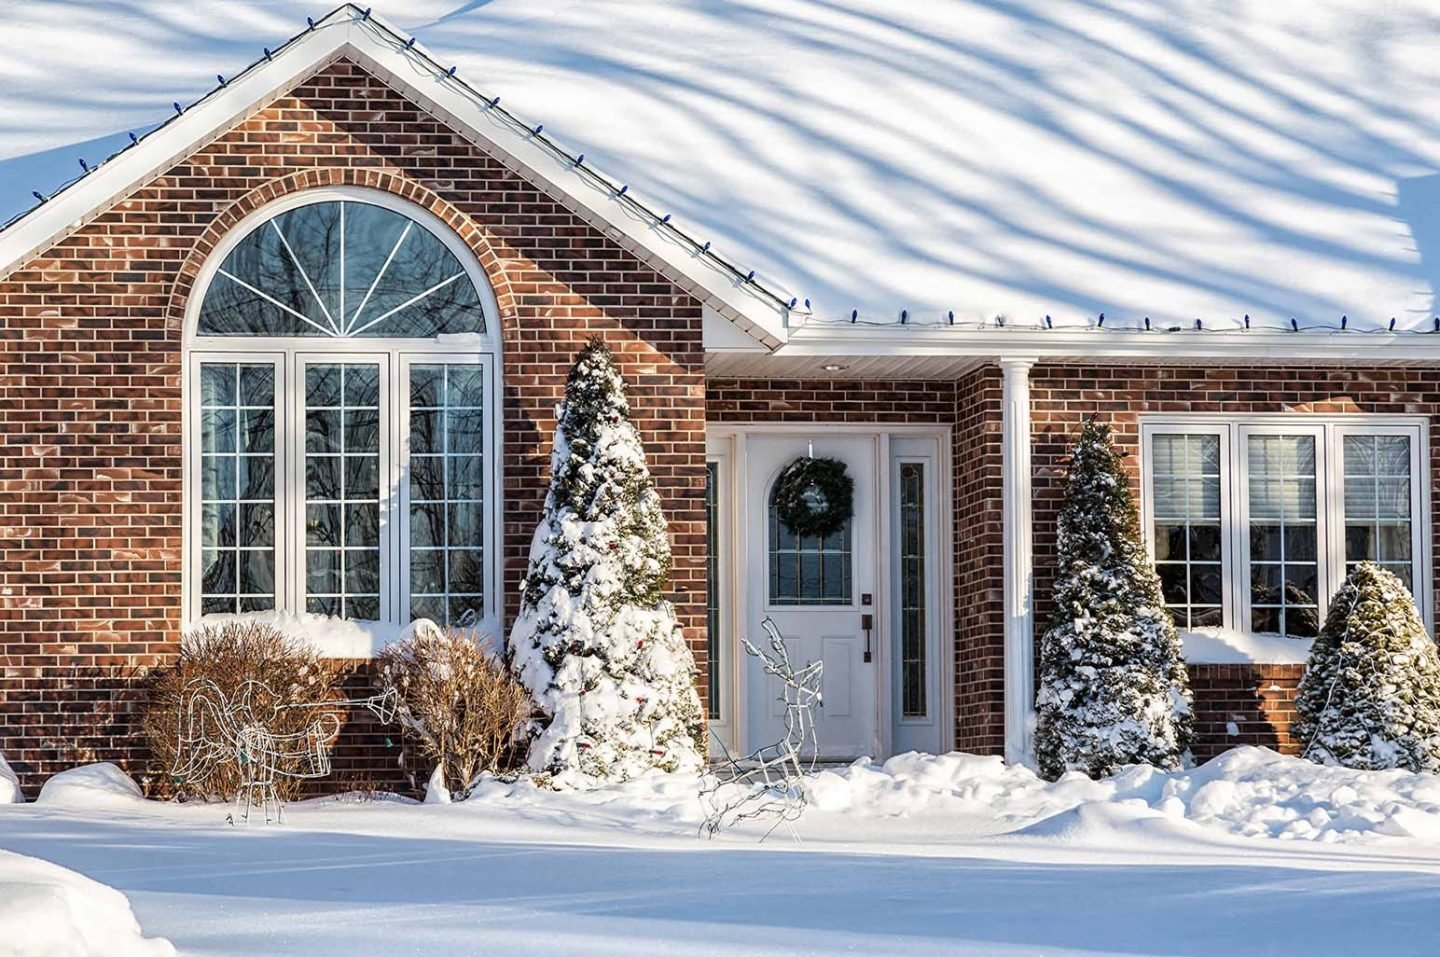 Getting Your Home Holiday Ready